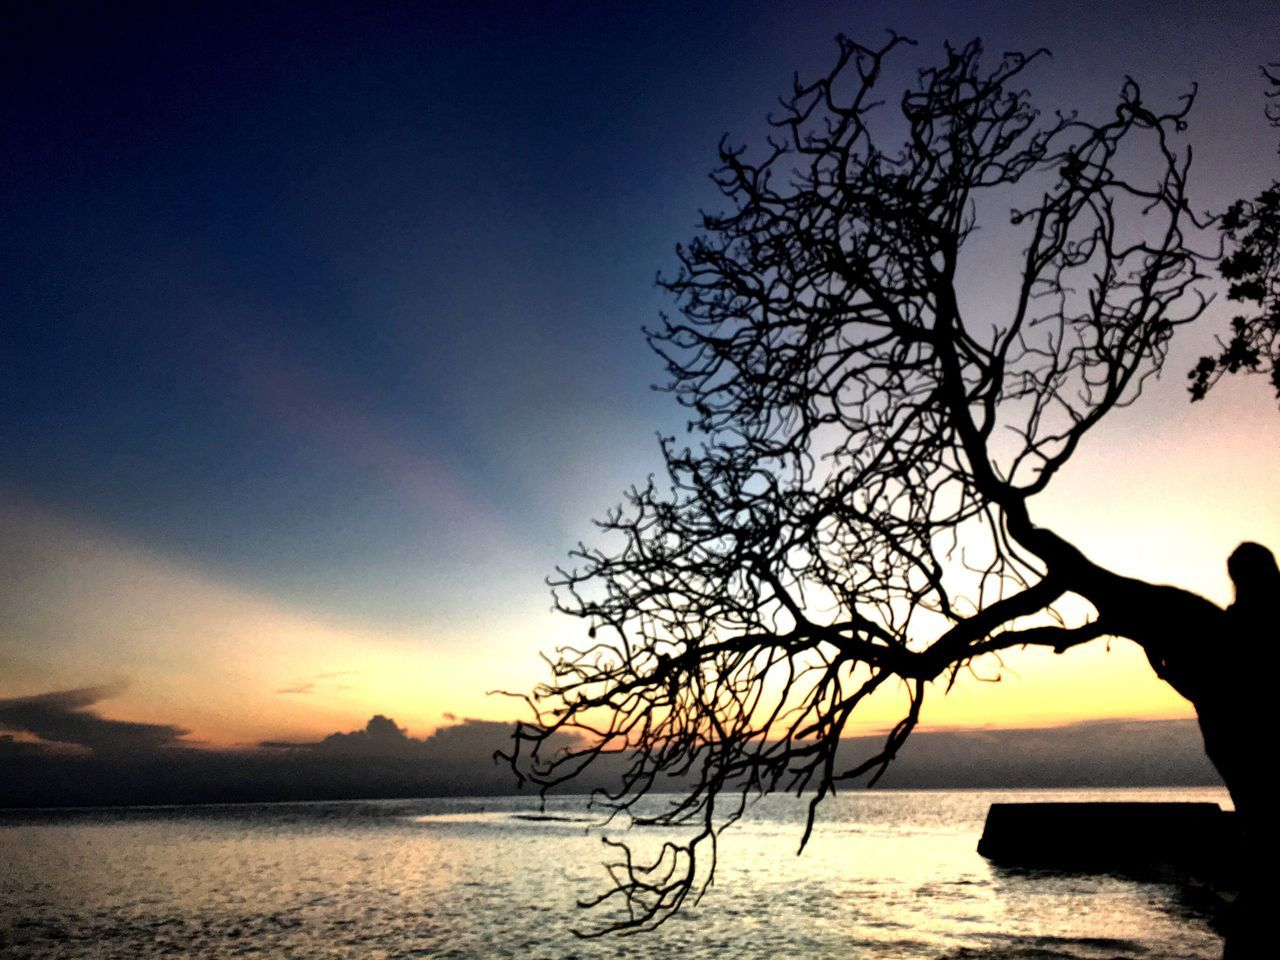 silhouette, sunset, beauty in nature, tree, water, sky, nature, tranquil scene, scenics, tranquility, sea, bare tree, outdoors, branch, horizon over water, no people, lone, day